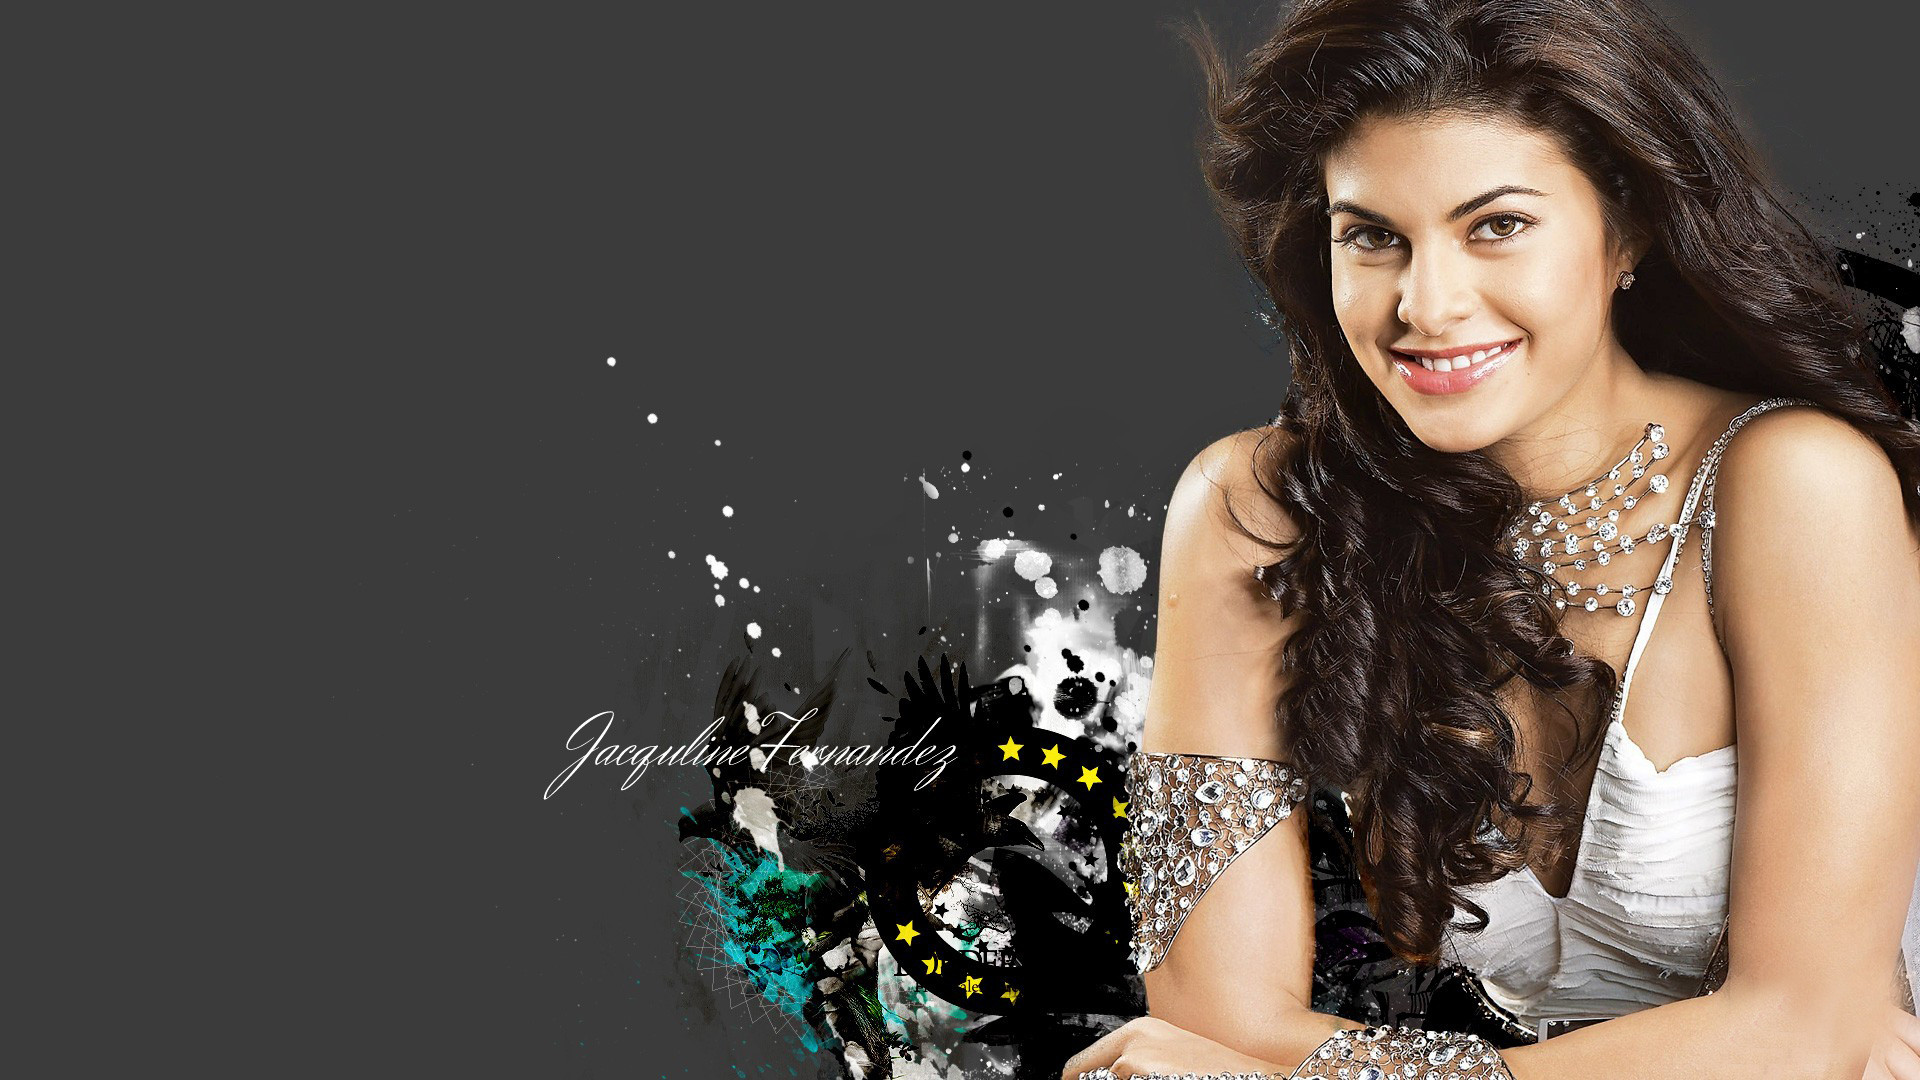 Actress wallpapers free download wallpapersafari - Indian actress wallpaper download ...